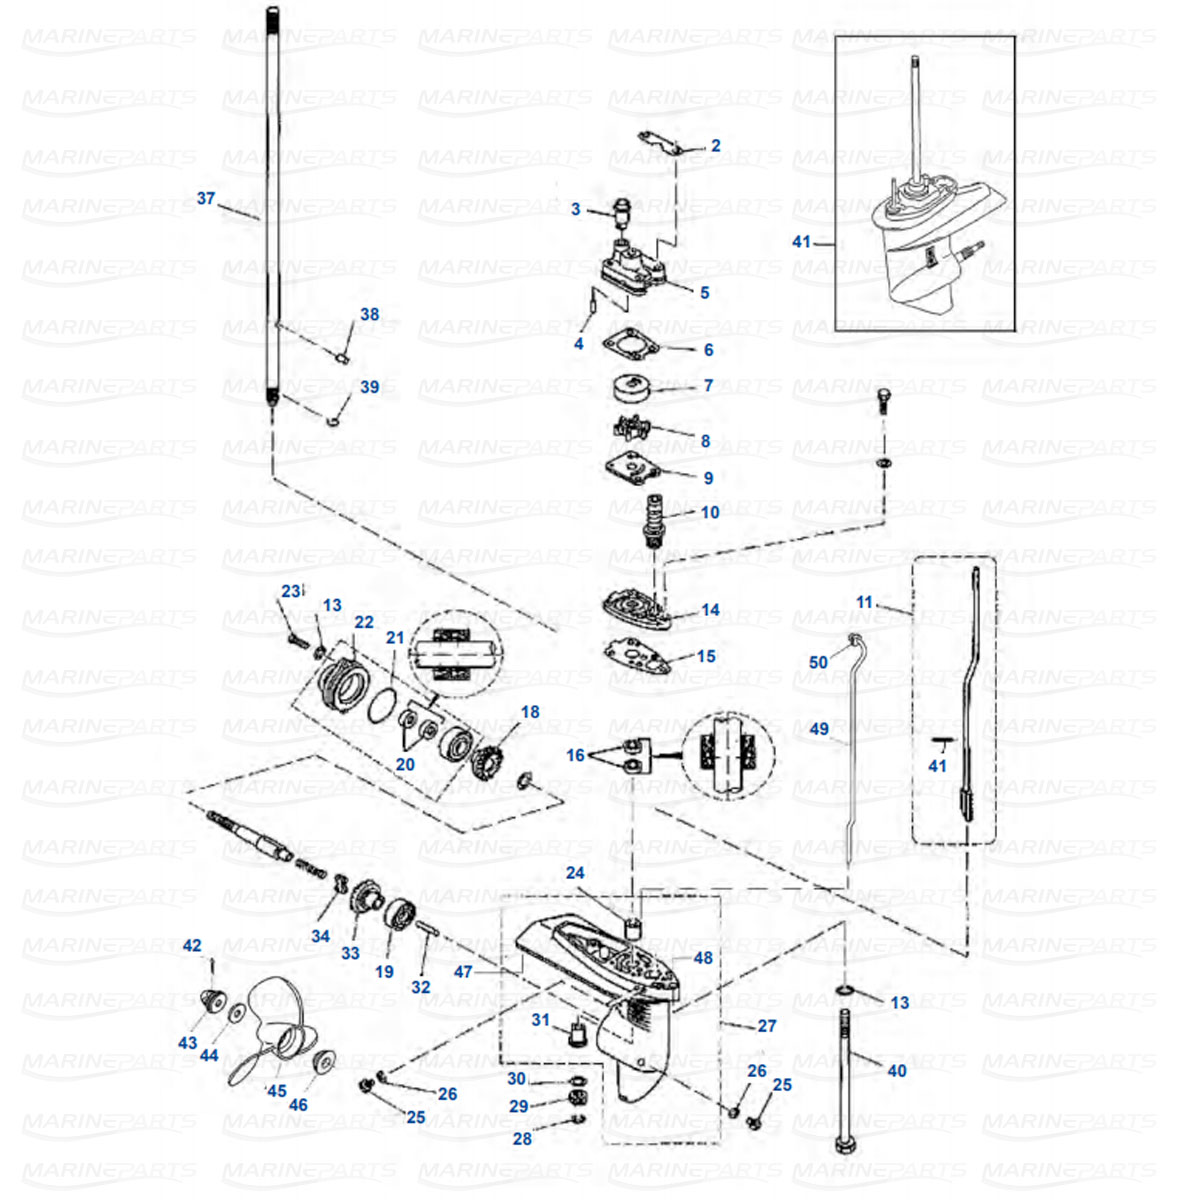 Yamaha Gearcase Parts For Outboard Motor Marineparts